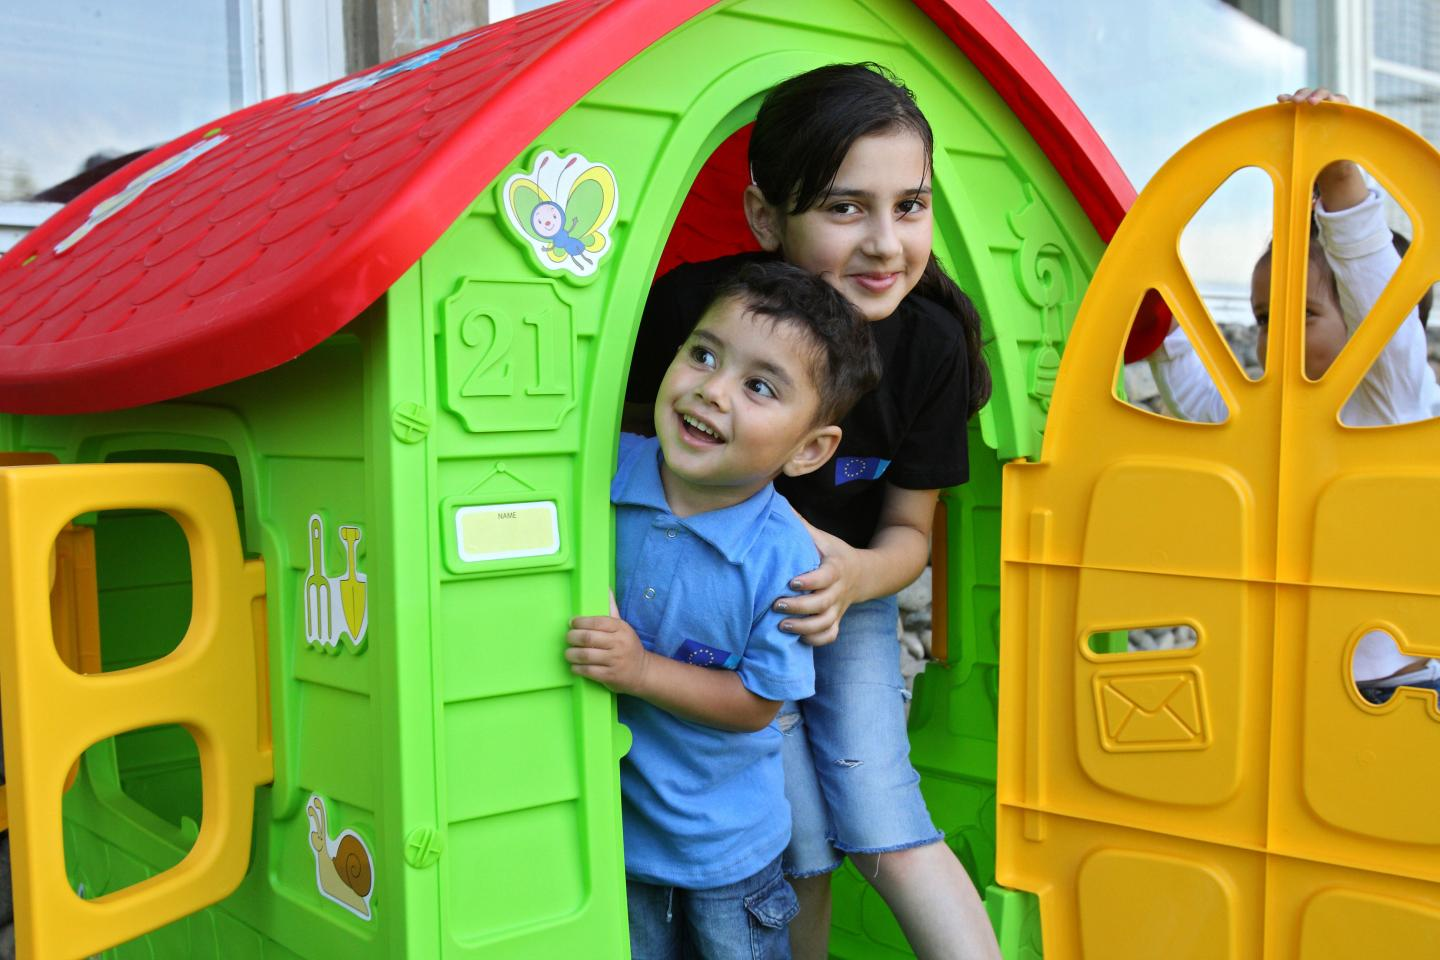 Refugee sister and brother playing in a toy house donated to the refugee and migrant centre in Serbia by UNICEF Serbia and EU